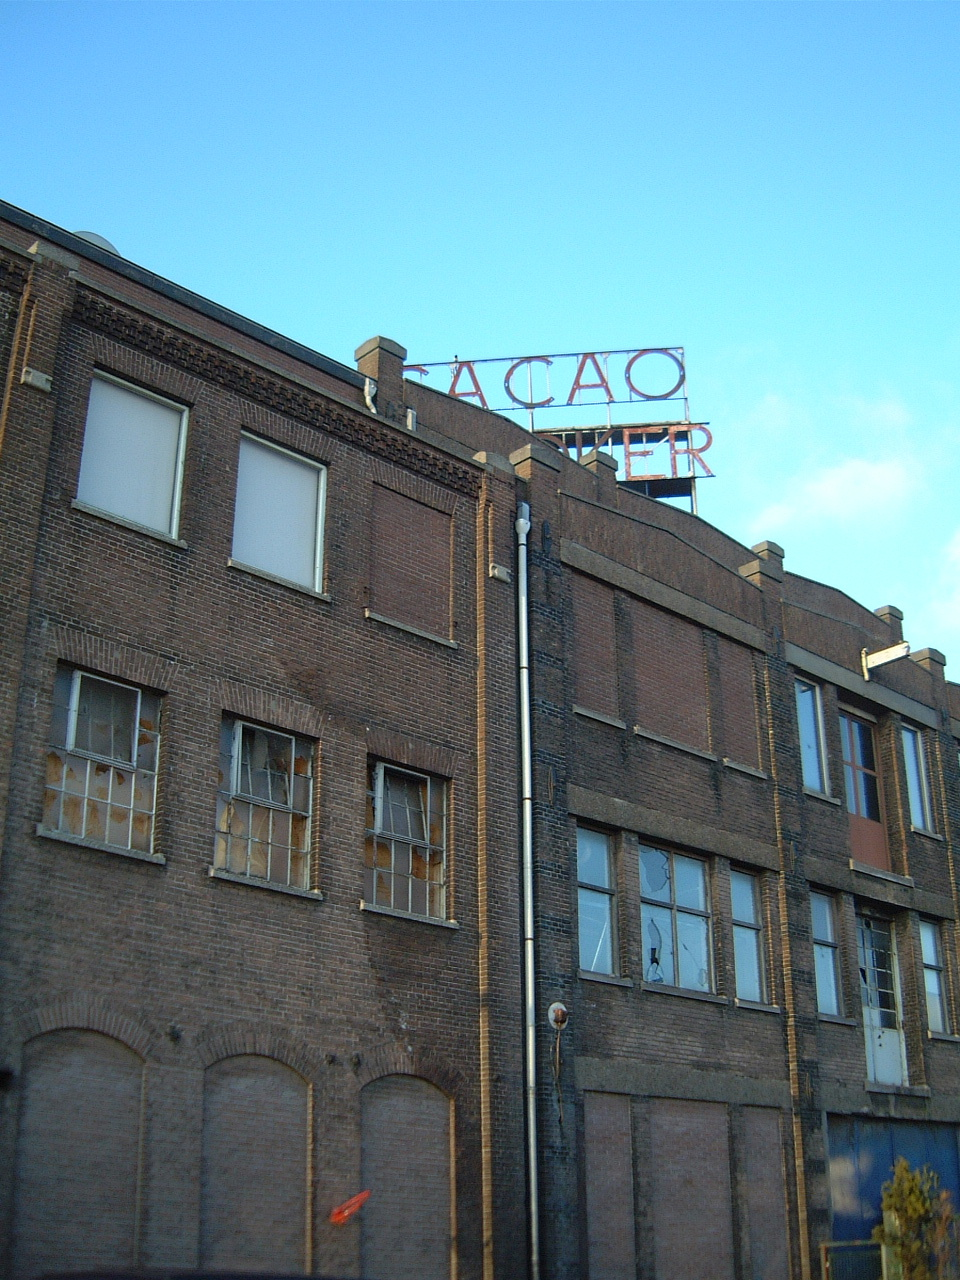 maartent building factory abandoned old sign cacao